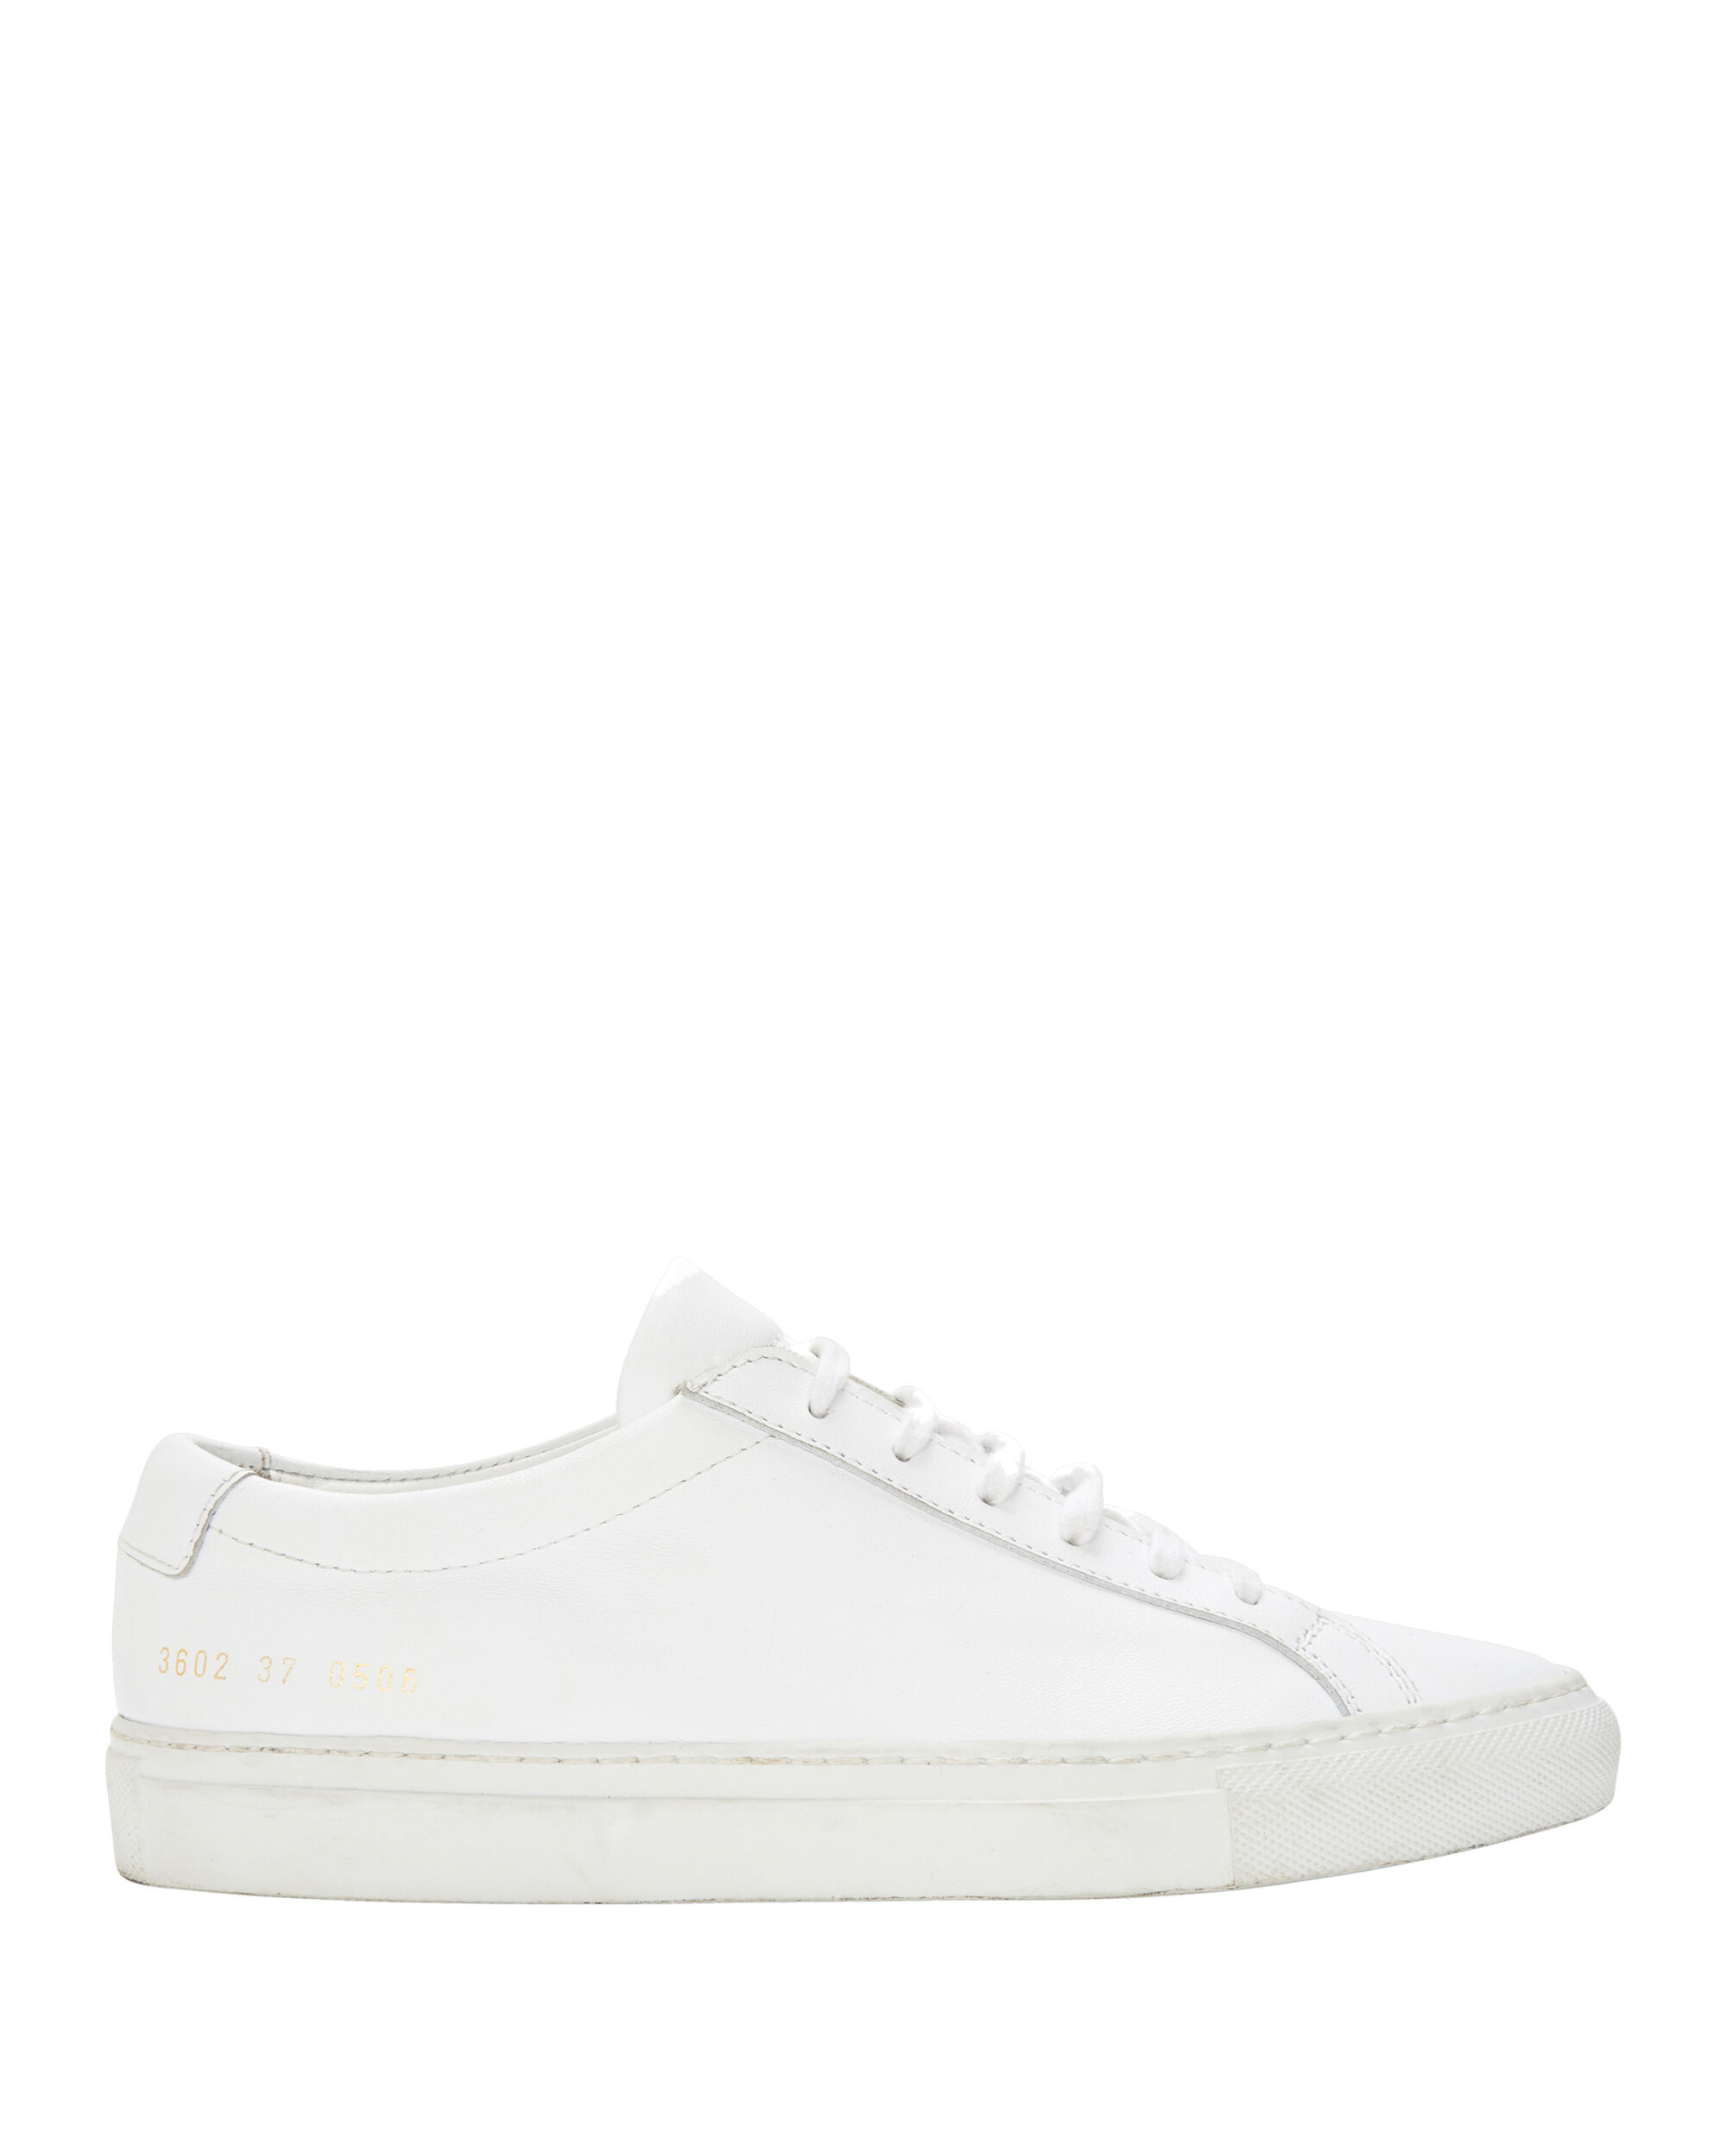 ACHILLES LOW WHITE LEATHER SNEAKERS